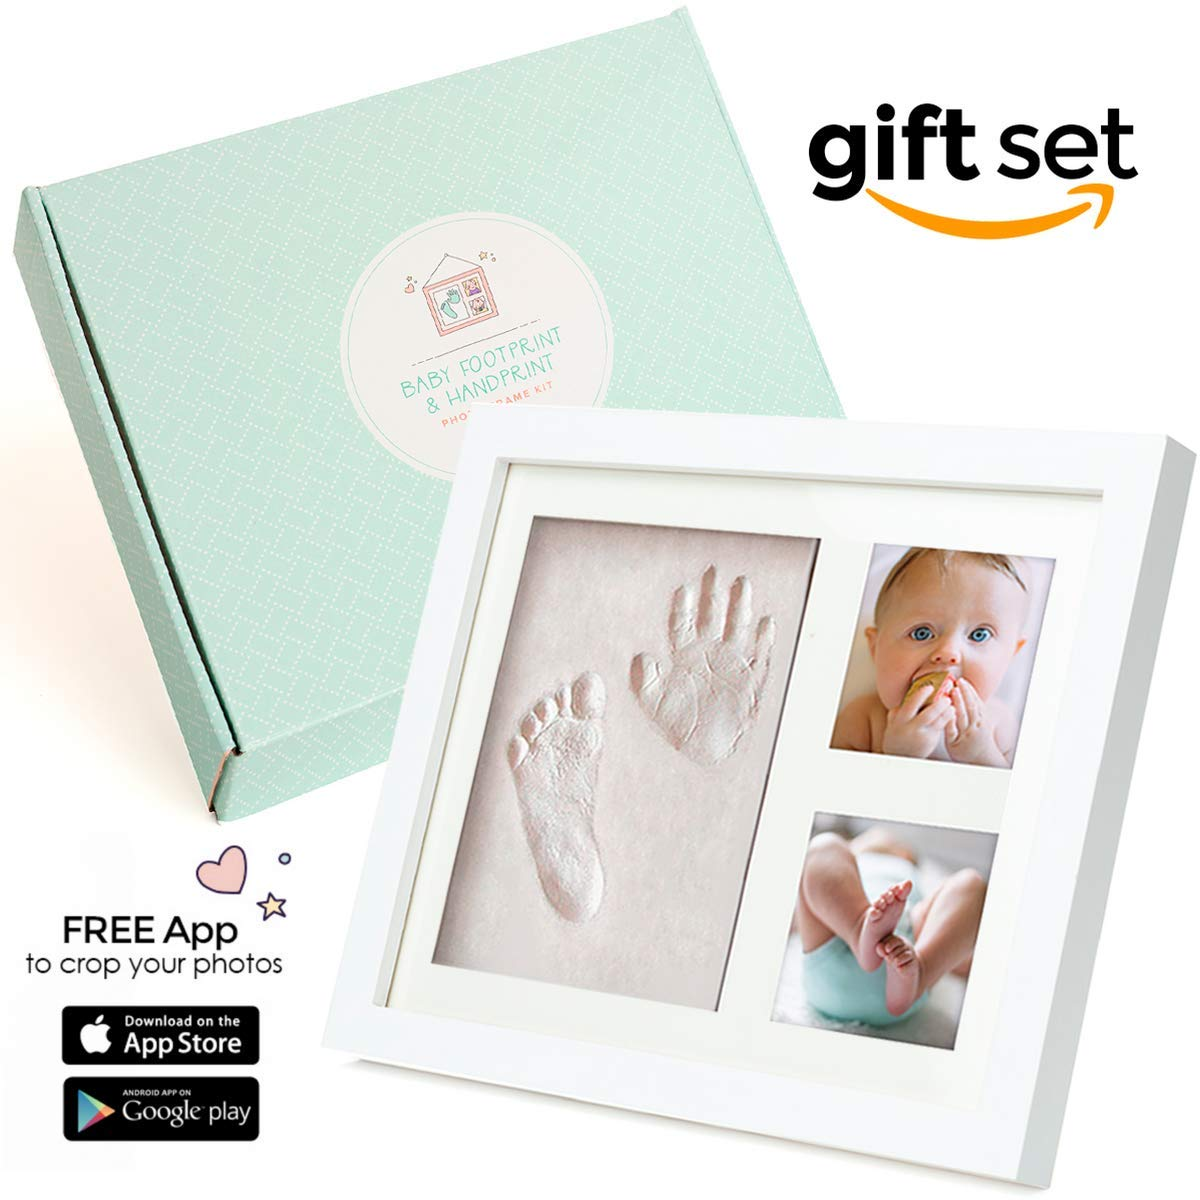 Baby Footprint and Handprint Photo Frame Kit | Gift Set Ideal for Registry for Baby Shower | Hassle-Free Picture cropping with Our Photo App | Clay to Stamp Girl or boy Babies Hand in a Cute Keepsake